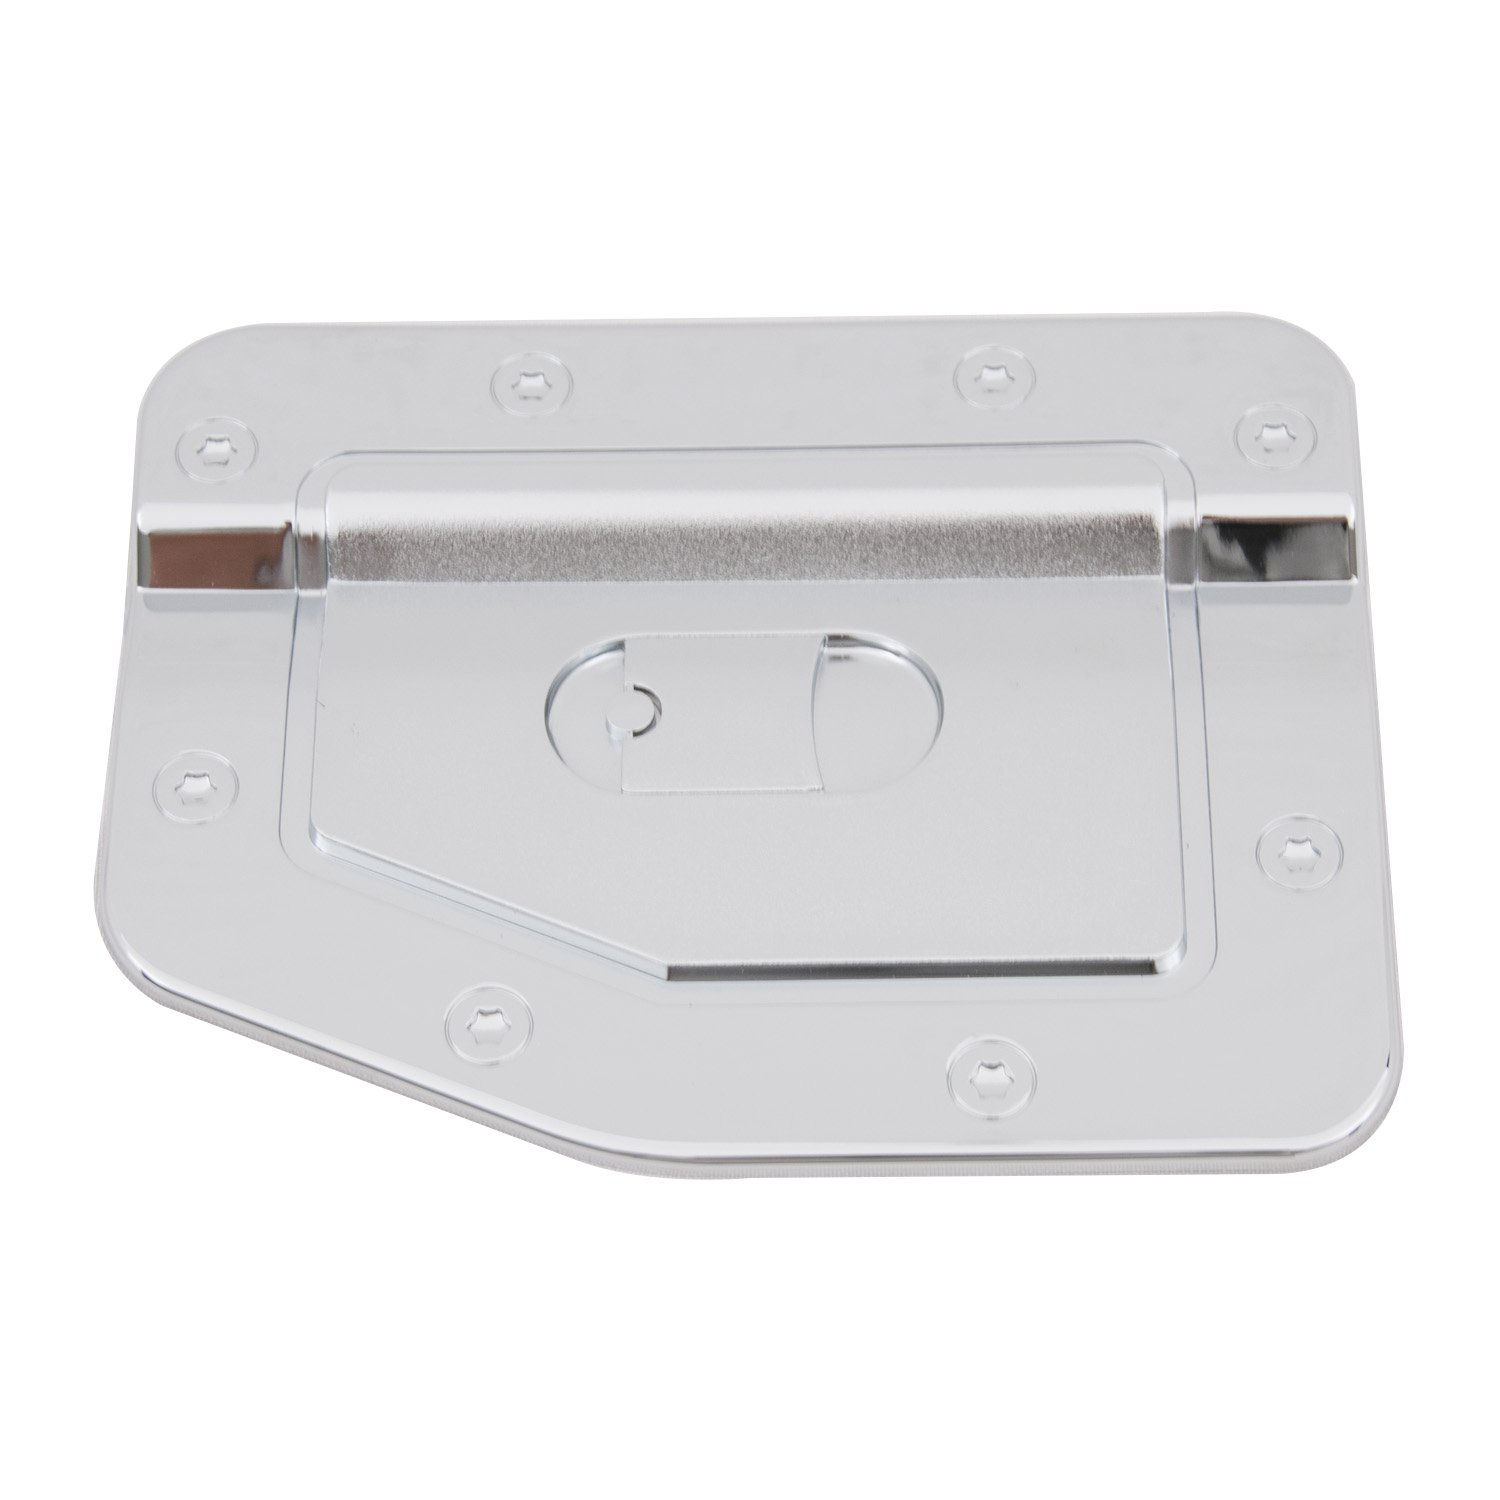 EAG Fit for 86-97 Nissan Hardbody Gas Door Cover Triple Chrome Plated ABS